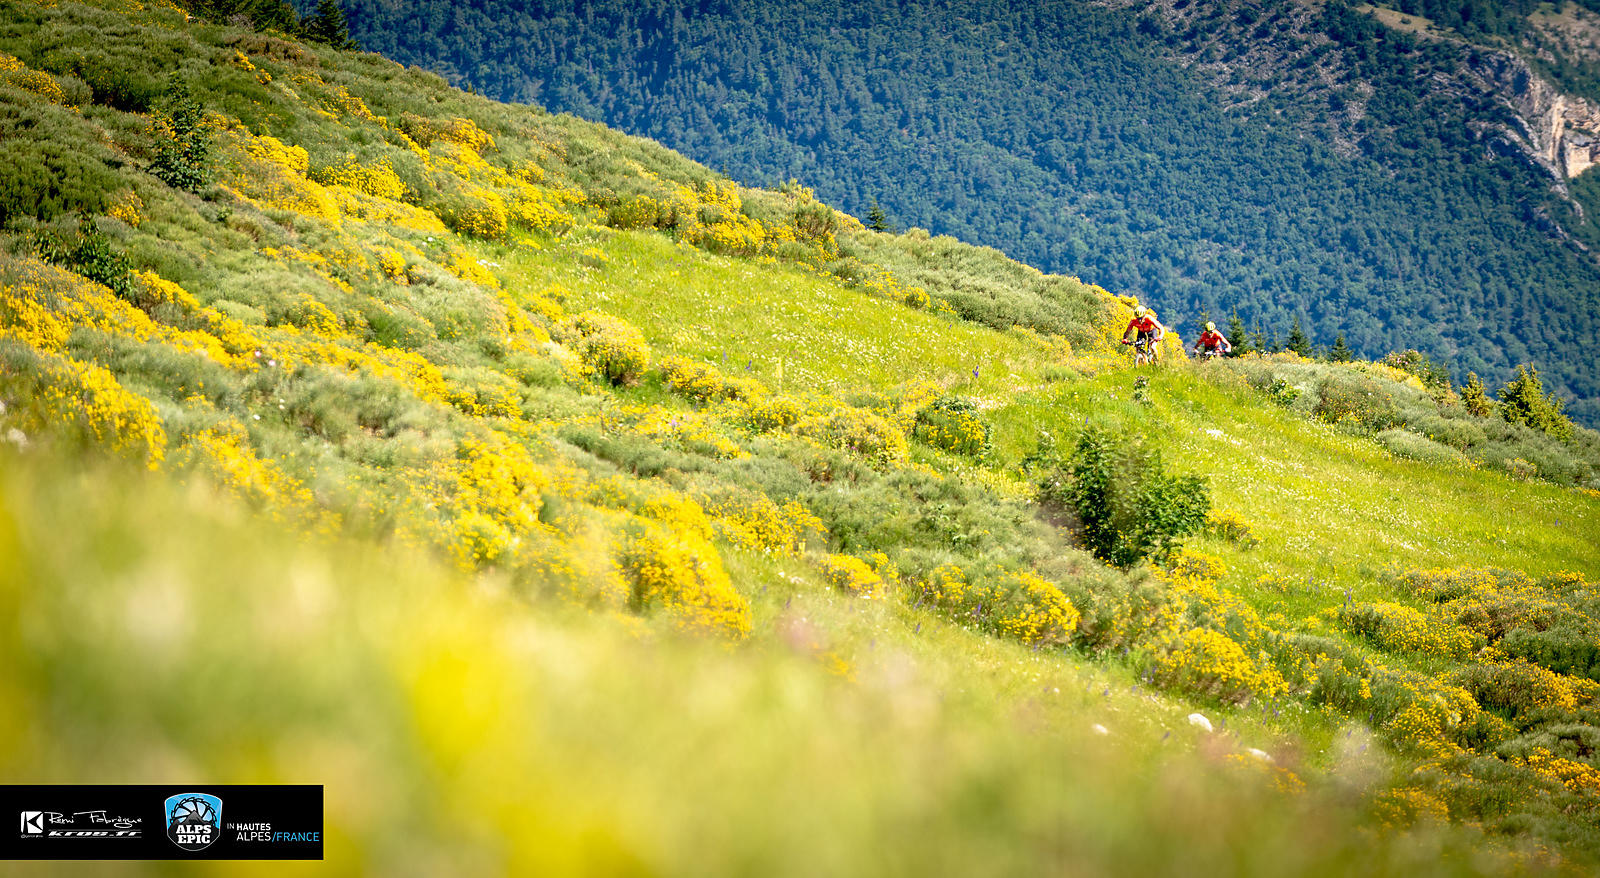 VendrediAlps_AgenceKros_RemiFABREGUE_(5_sur_19)